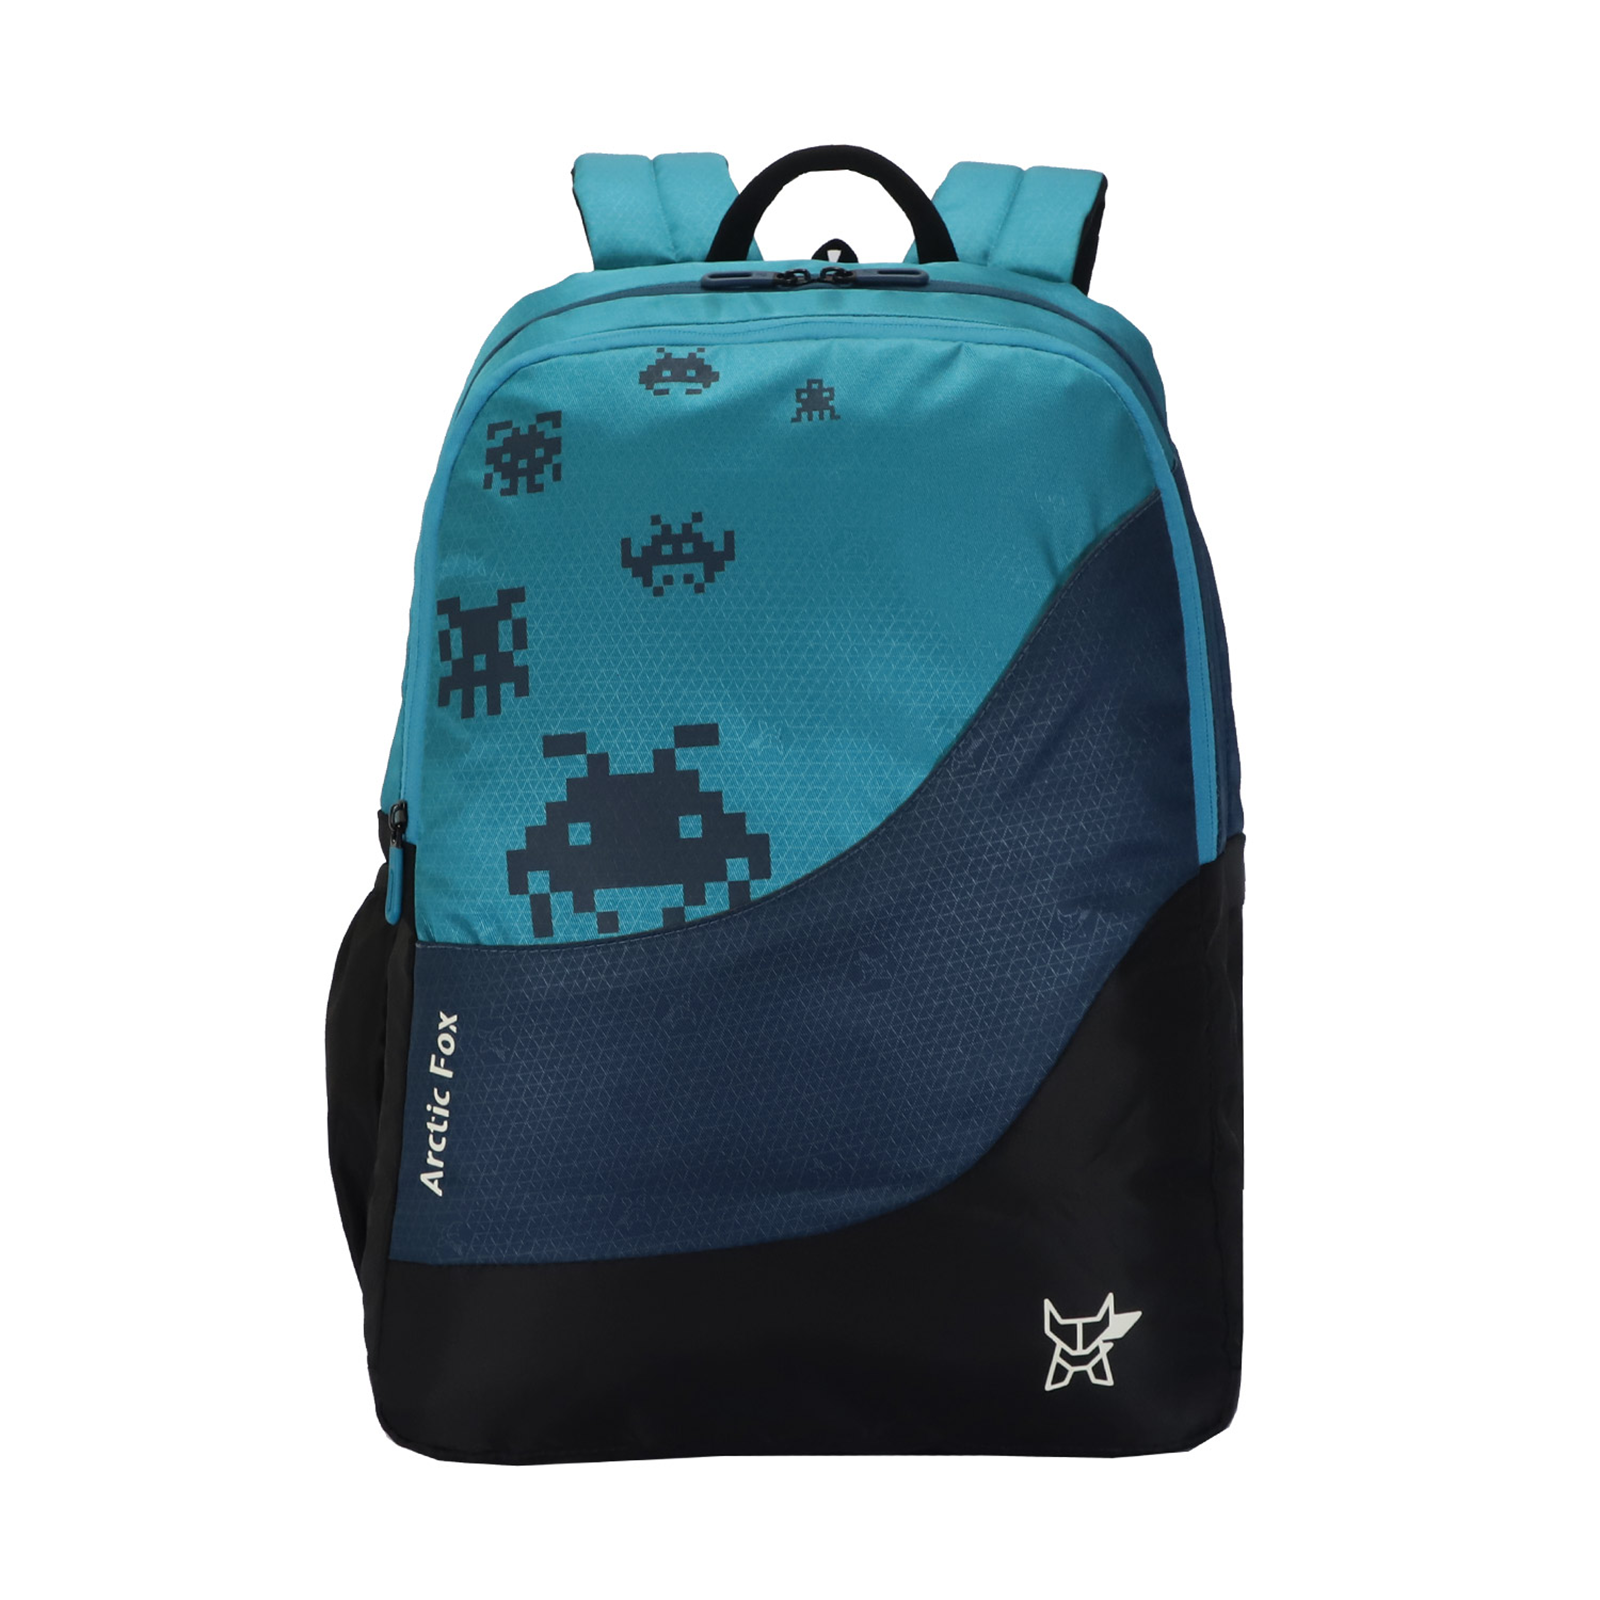 Arctic Fox Mario 31.5 Litres Polyester Backpack (Padded Shoulder Straps, FJUBPKCSEON048032, Caribbean Sea)_1